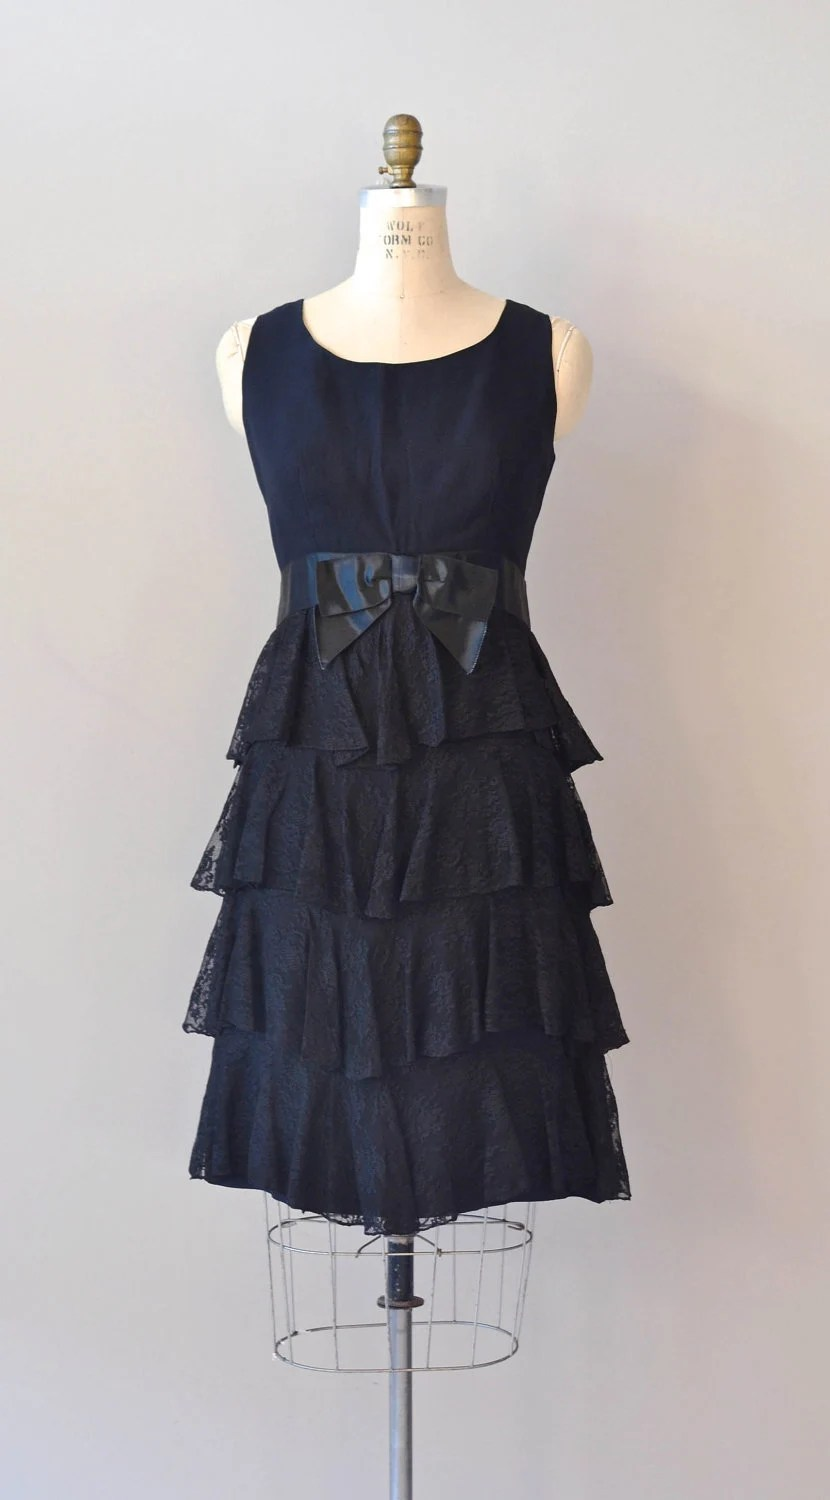 1960s dress / black lace 60s dress / Trio 1964 dress